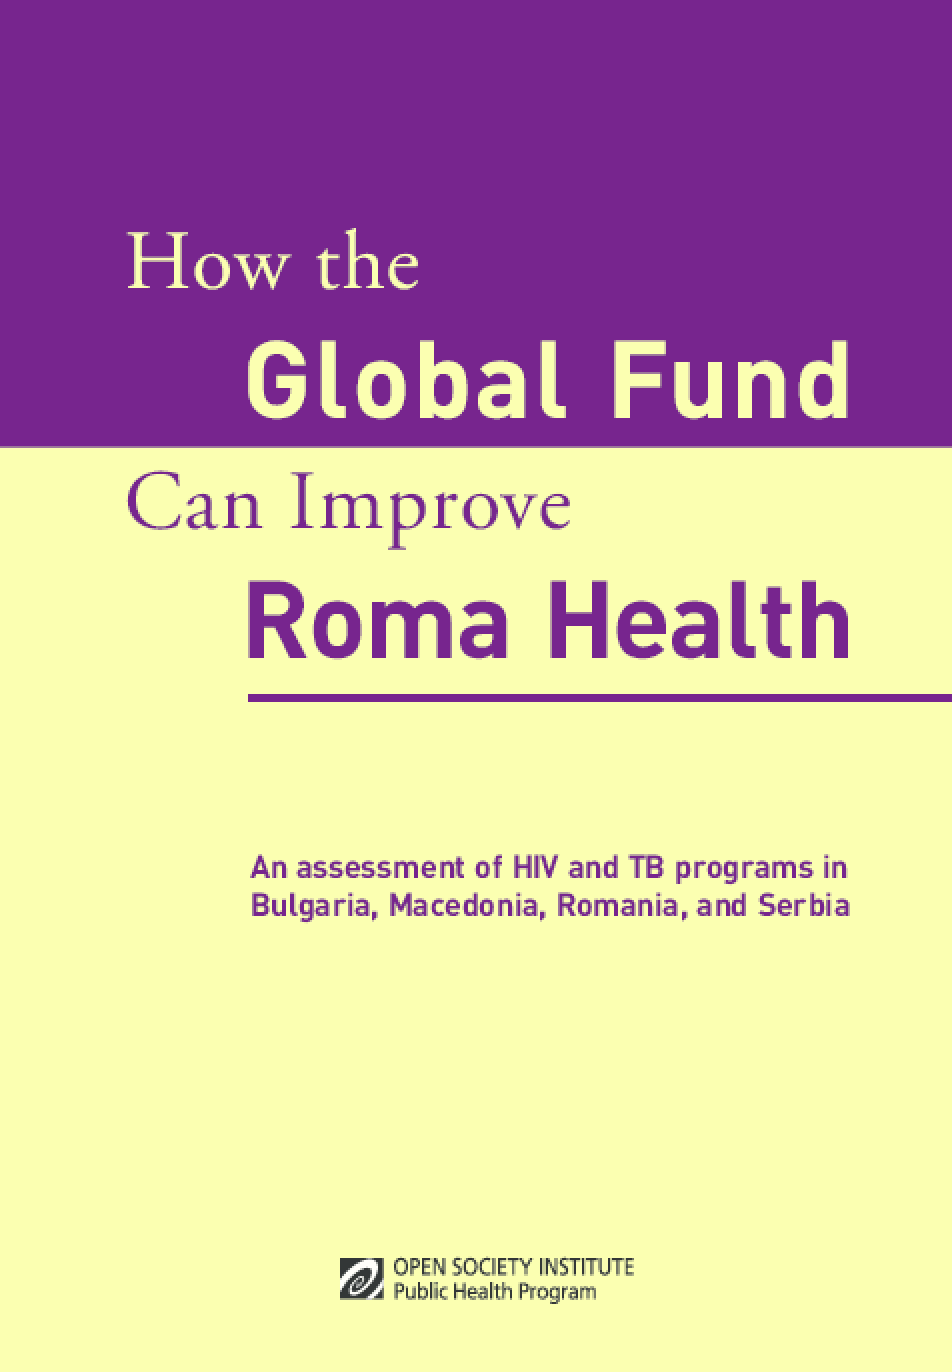 How the Global Fund Can Improve Roma Health: An Assessment of HIV and TB Programs in Bulgaria, Macedonia, Romania, and Serbia